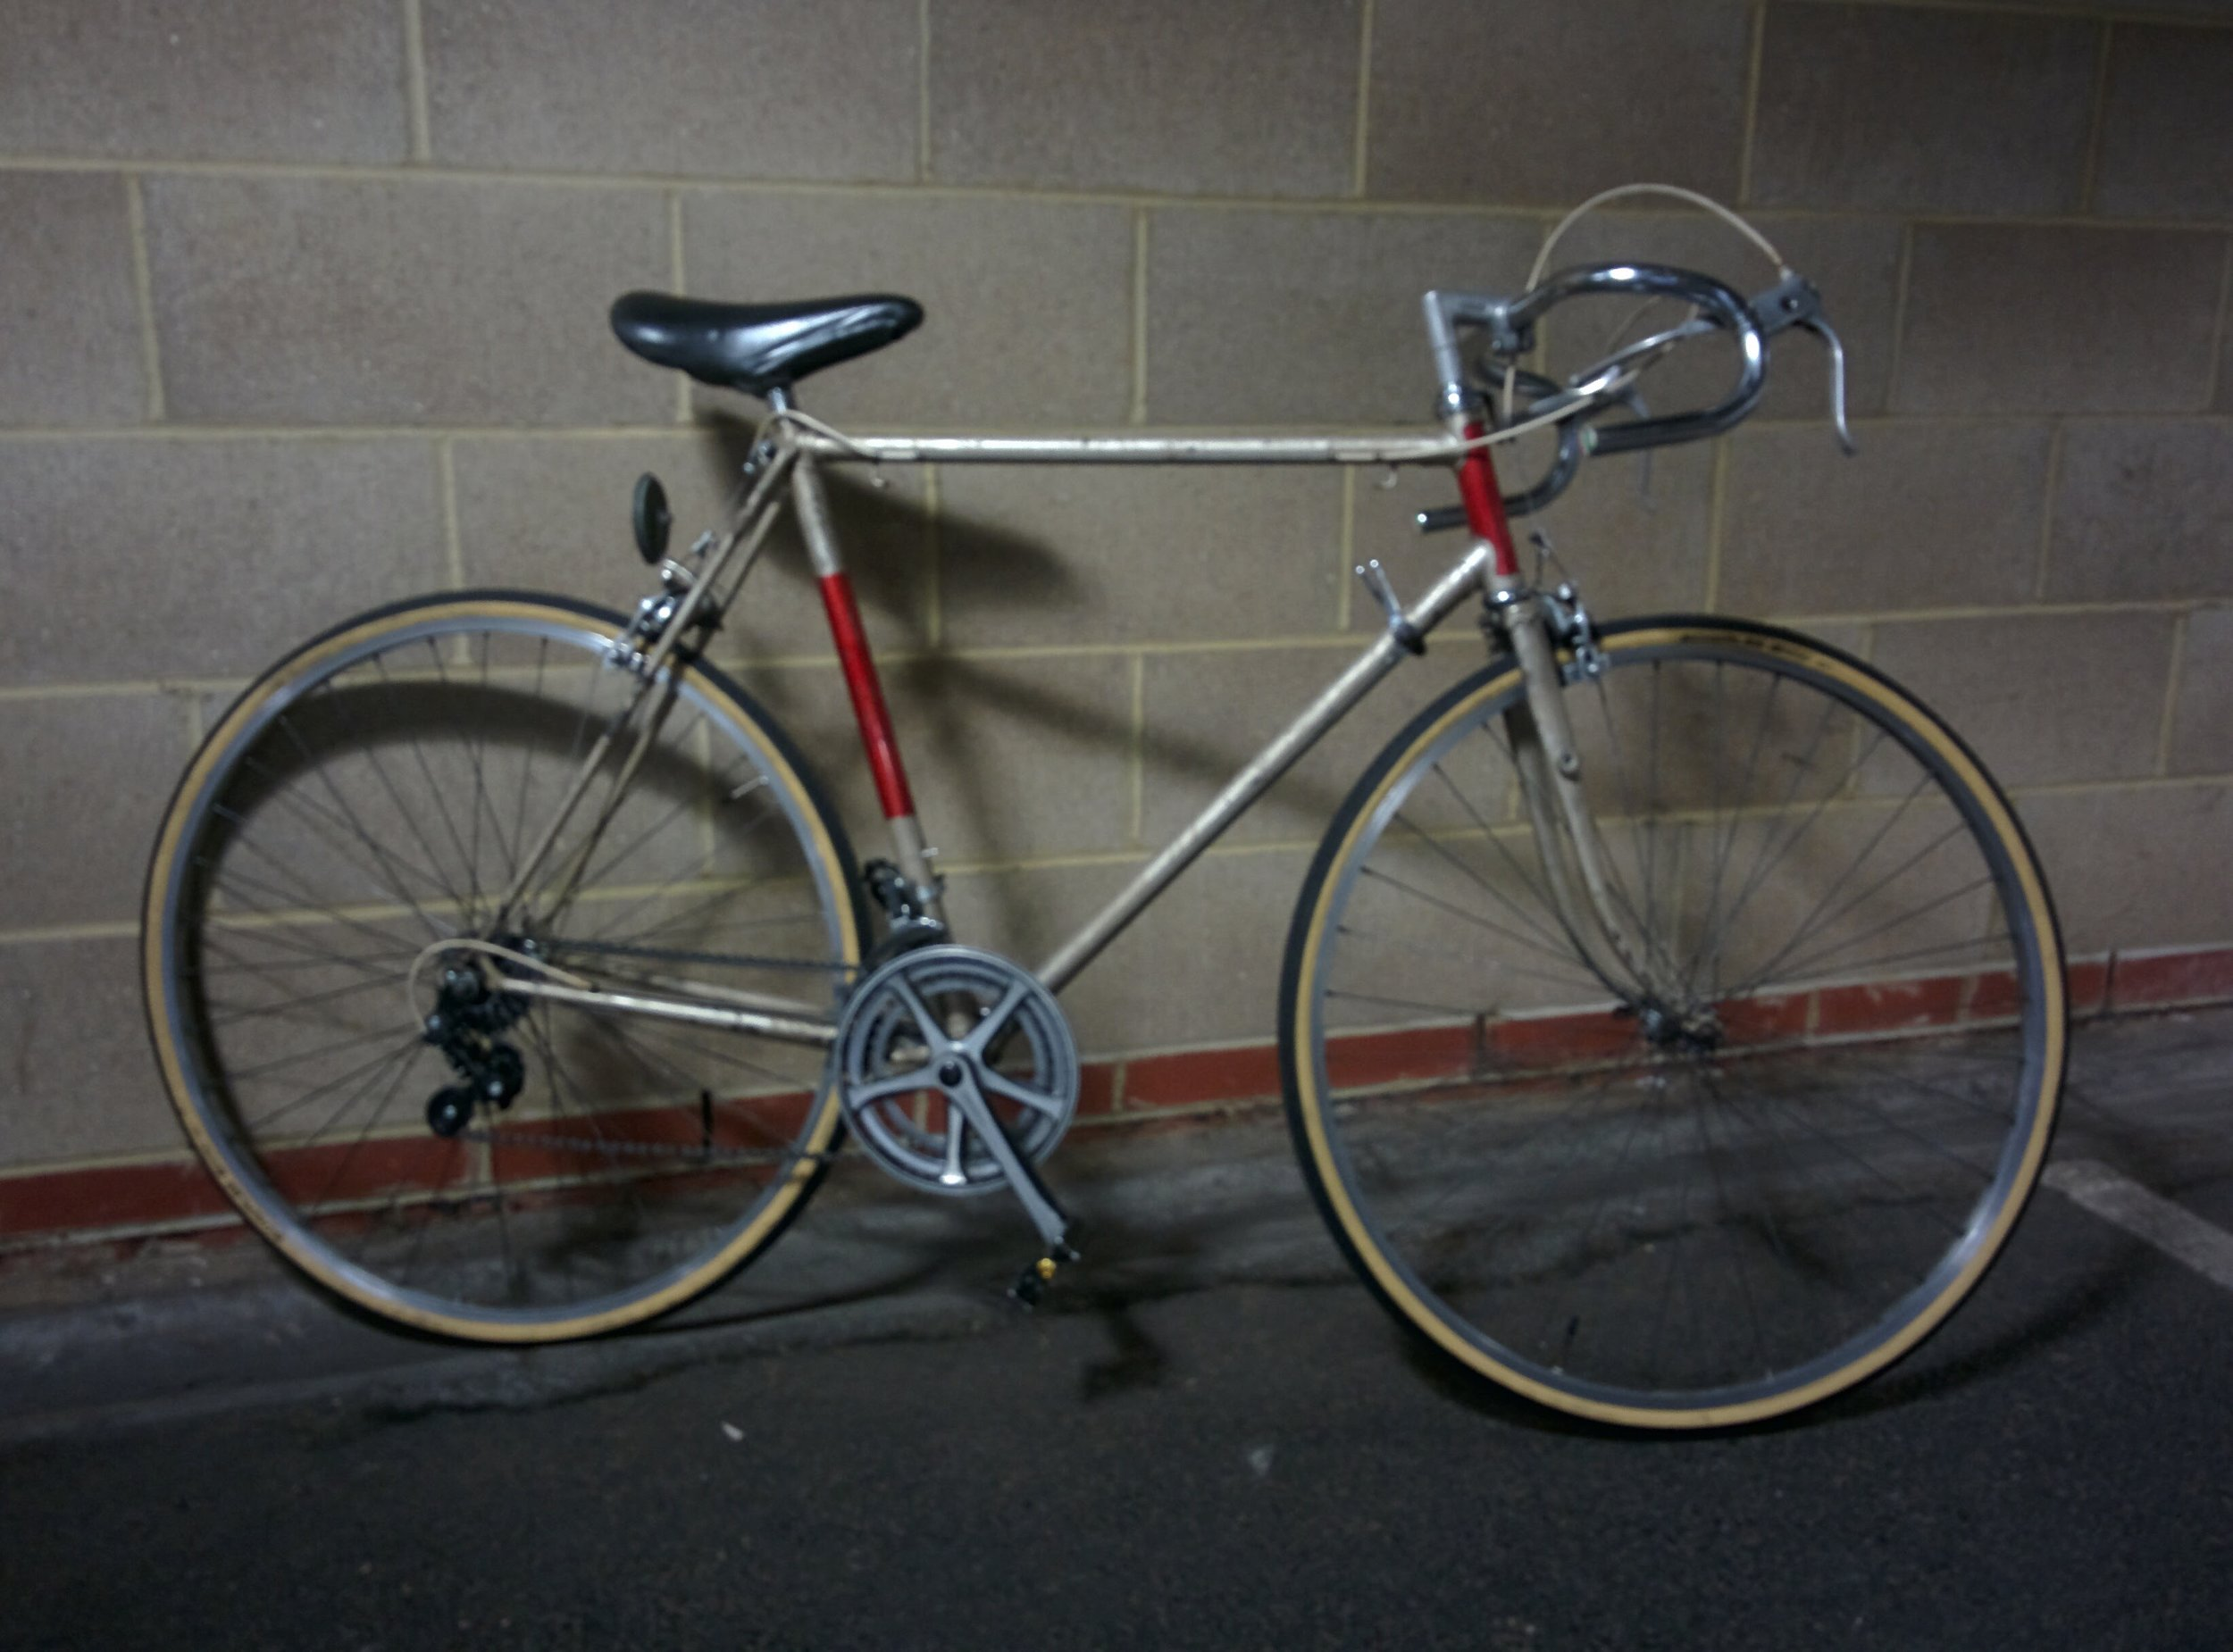 1980's 12 speed Raleigh Medale.  - Sold   Servicing  - Full service, including replaced broken spokes, new tyres, chainring, rear derailleur, polished bars   August / September 2016